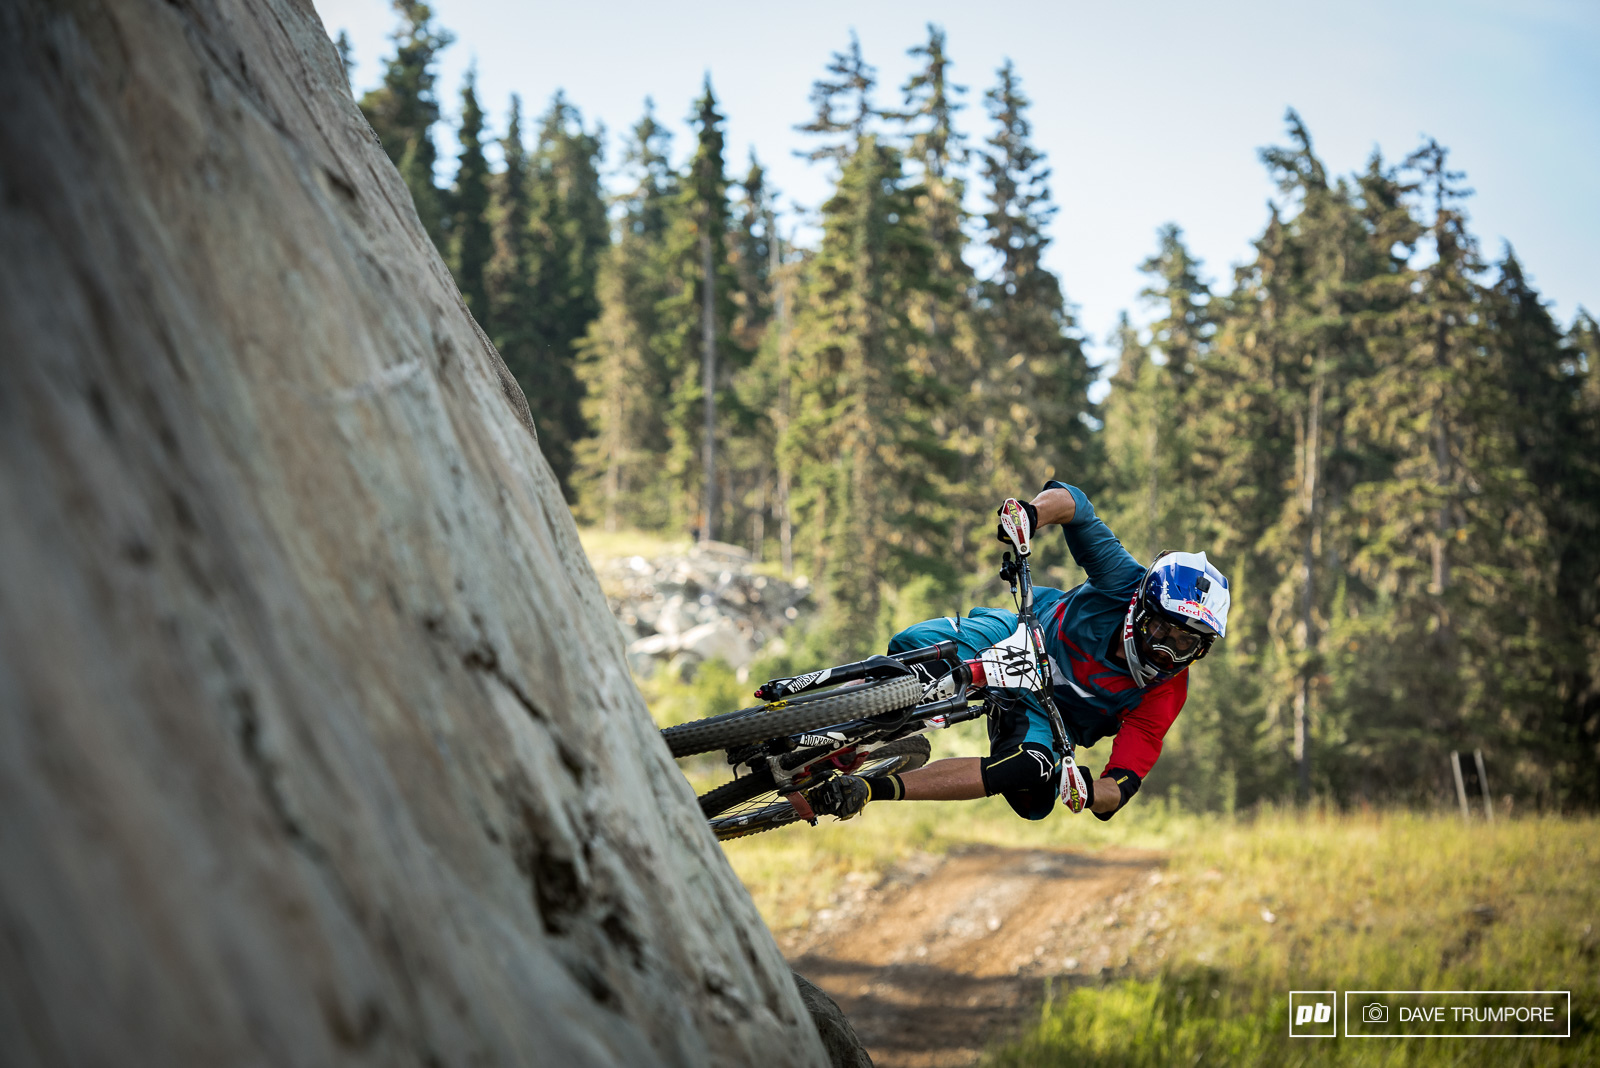 Matti Lehikoinen knows that when you ride a bike park track on stage one you have to bust out the bike park moves. Matti would finish the day in 15th inching closer and closer to that elusive top 10.